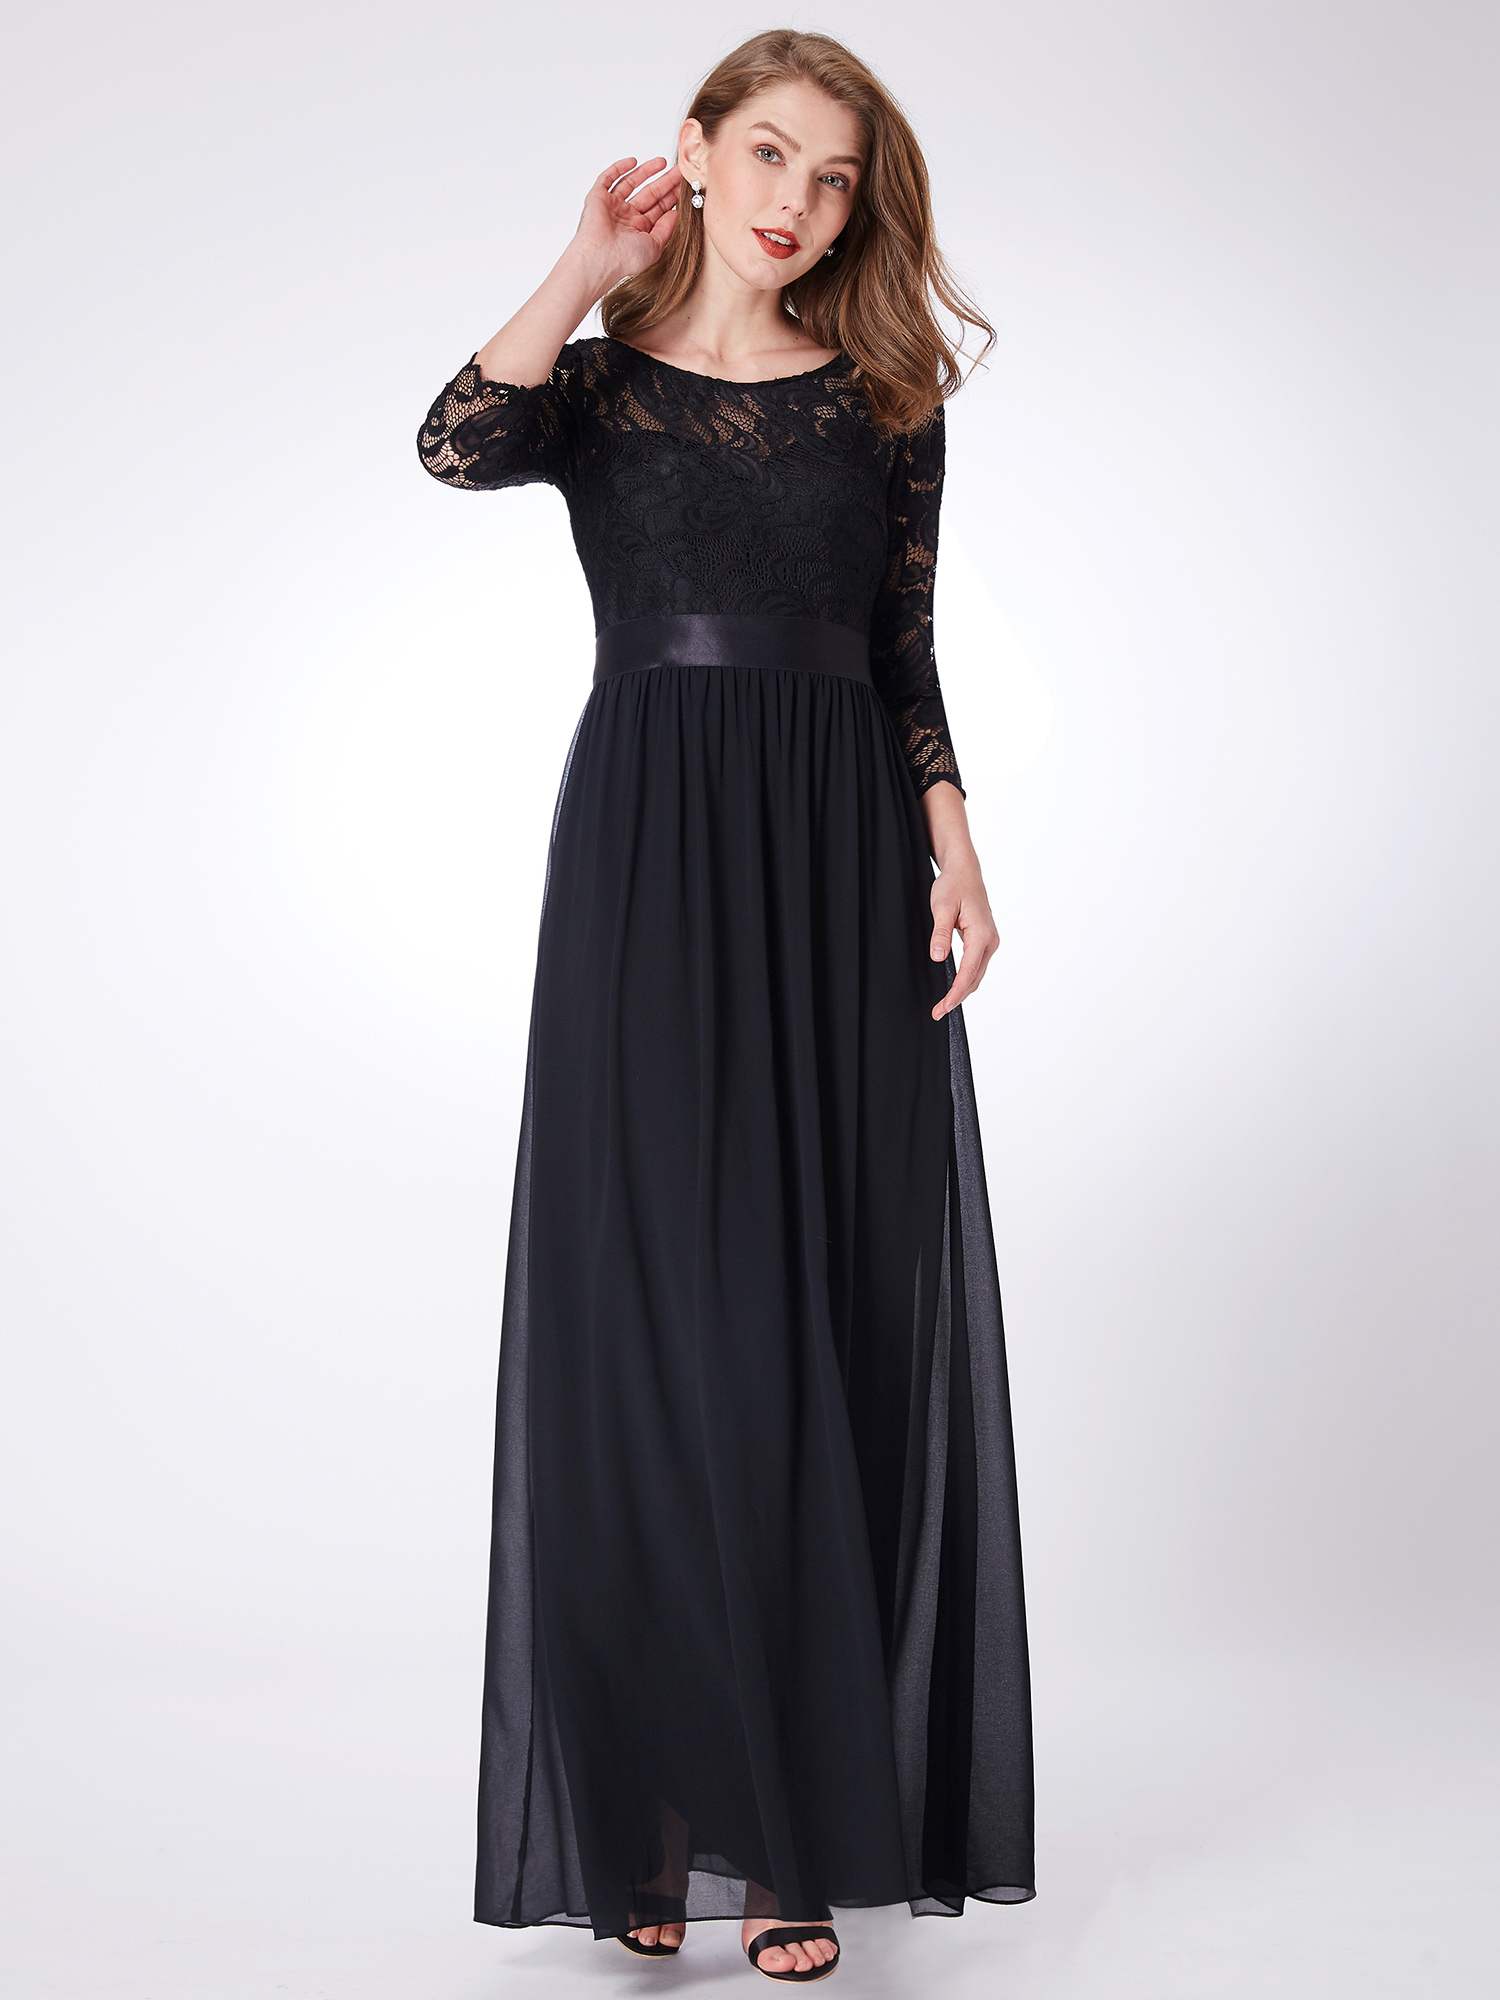 Ever-Pretty New US Black Long Evening Dress 3/4 Sleeve Evening Party ...